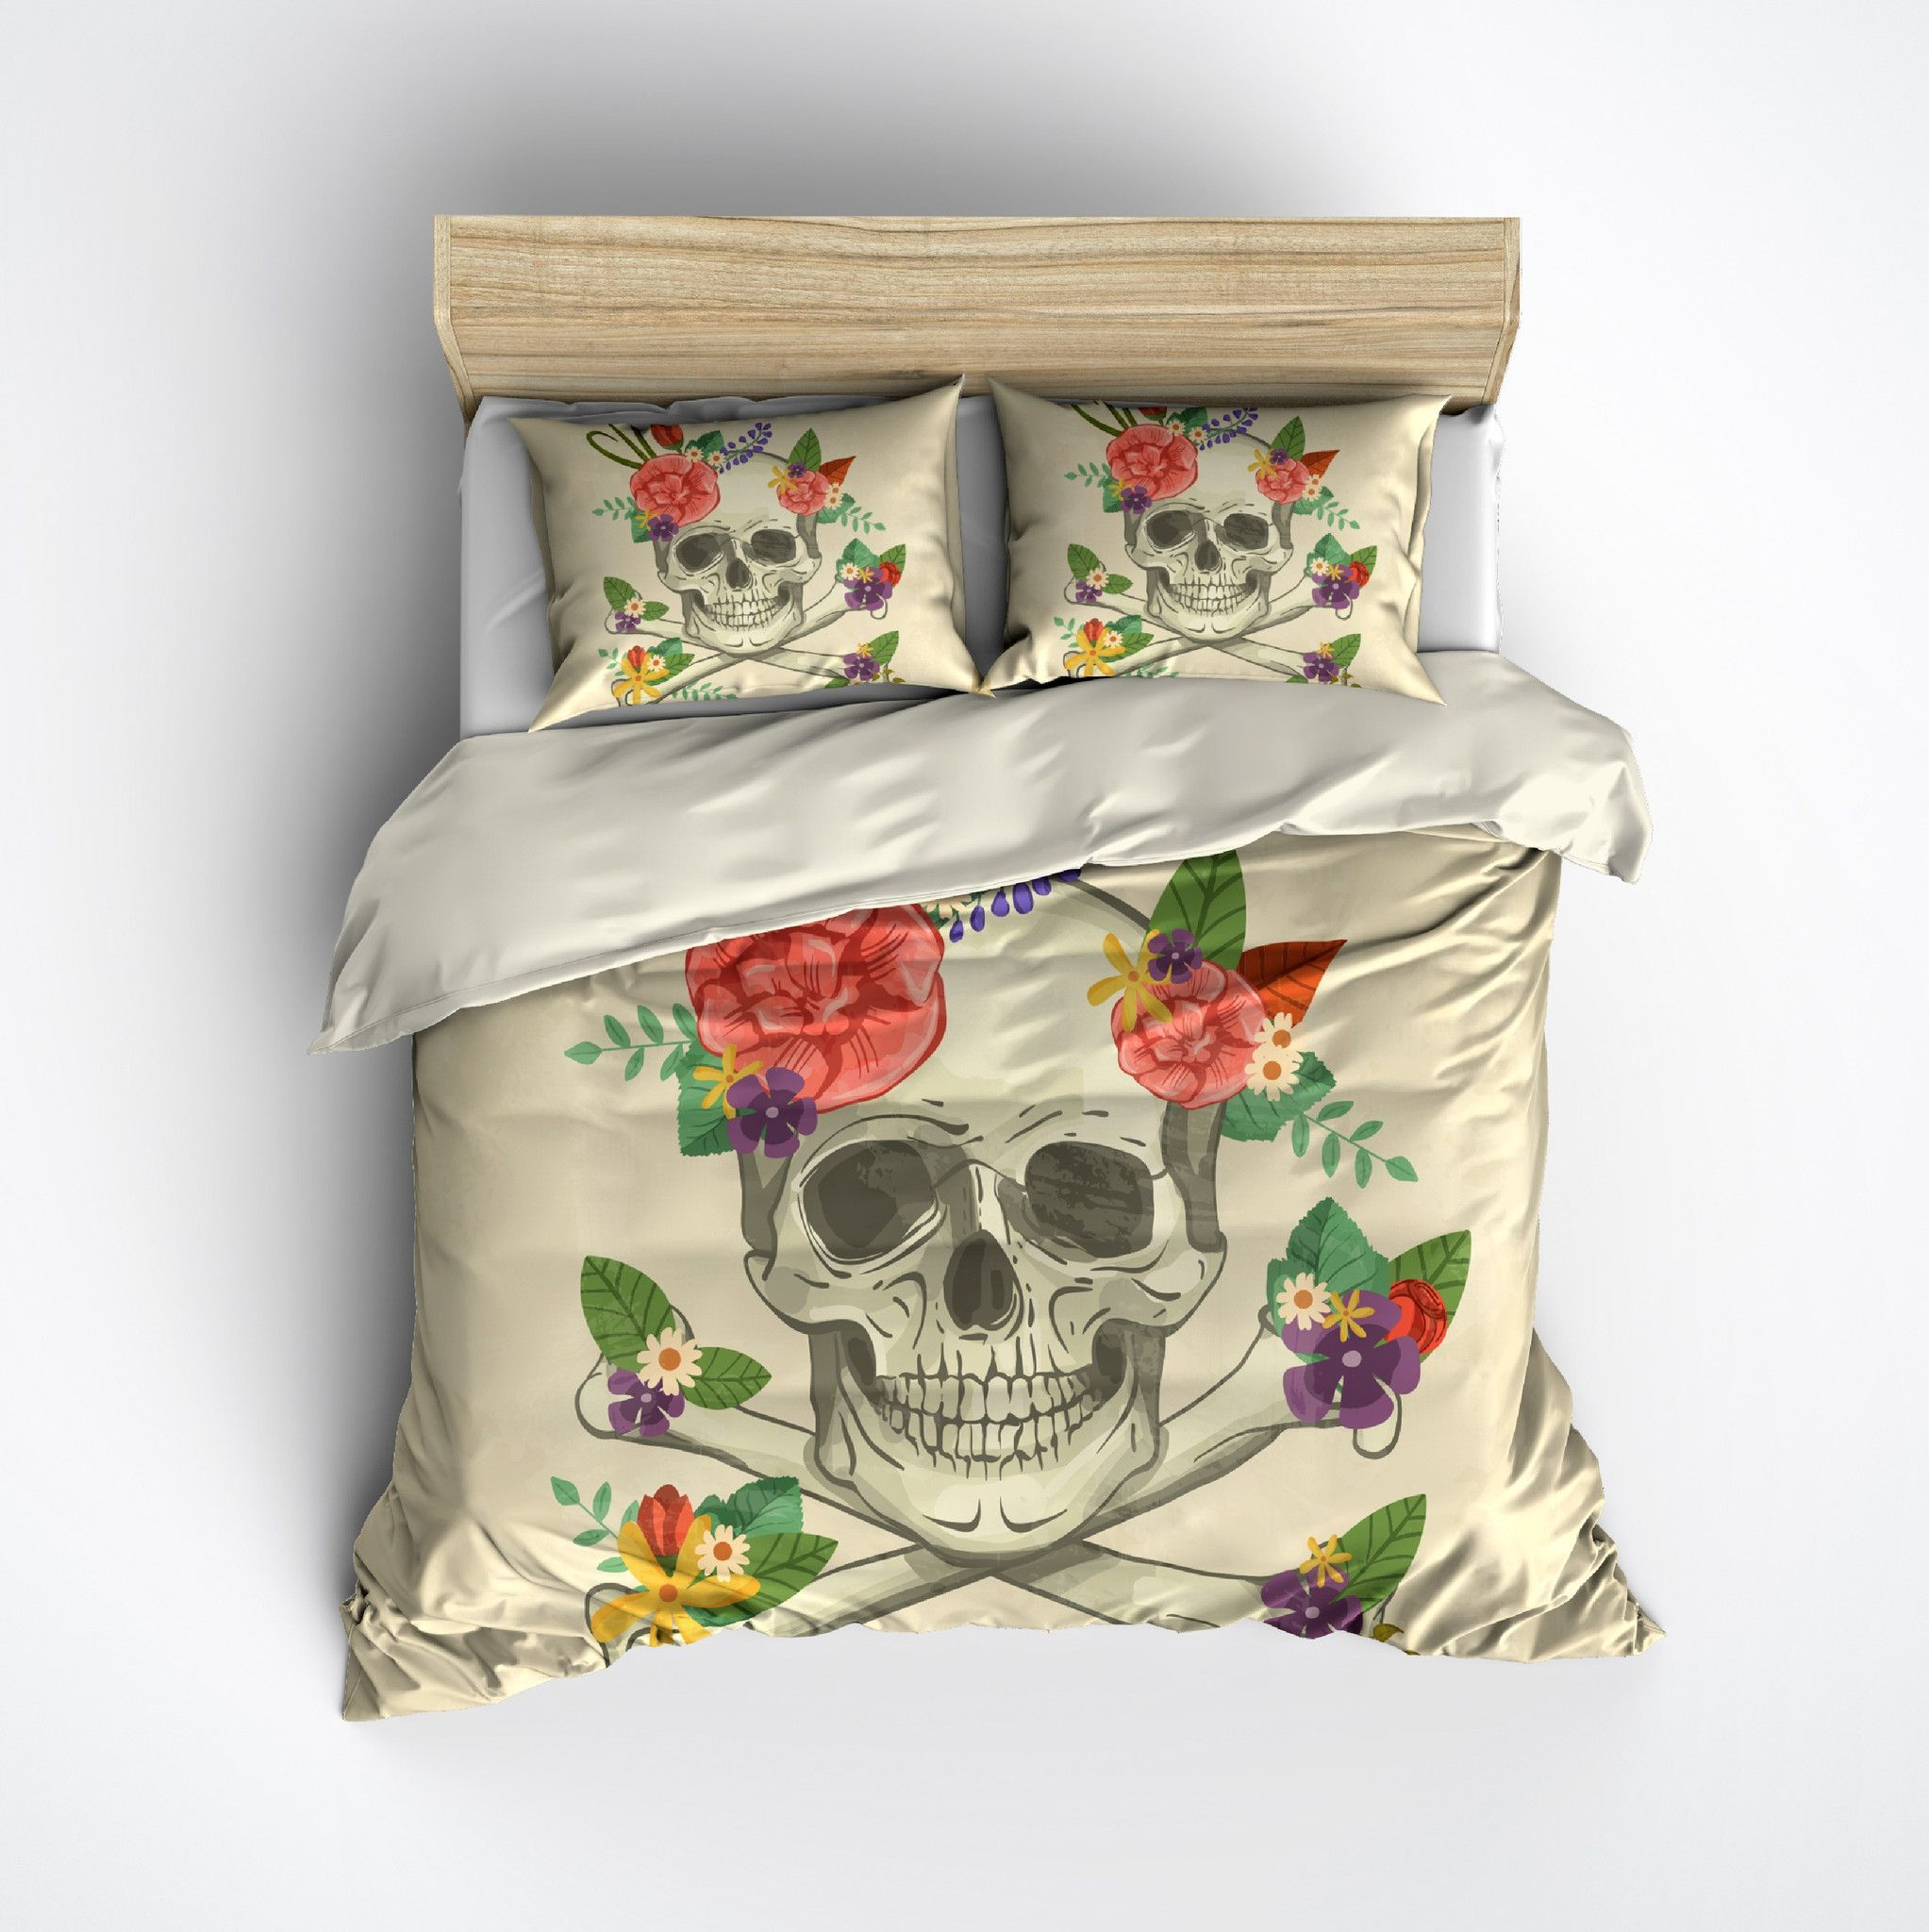 Whimsy Floral Skull and Crossbone Bedding